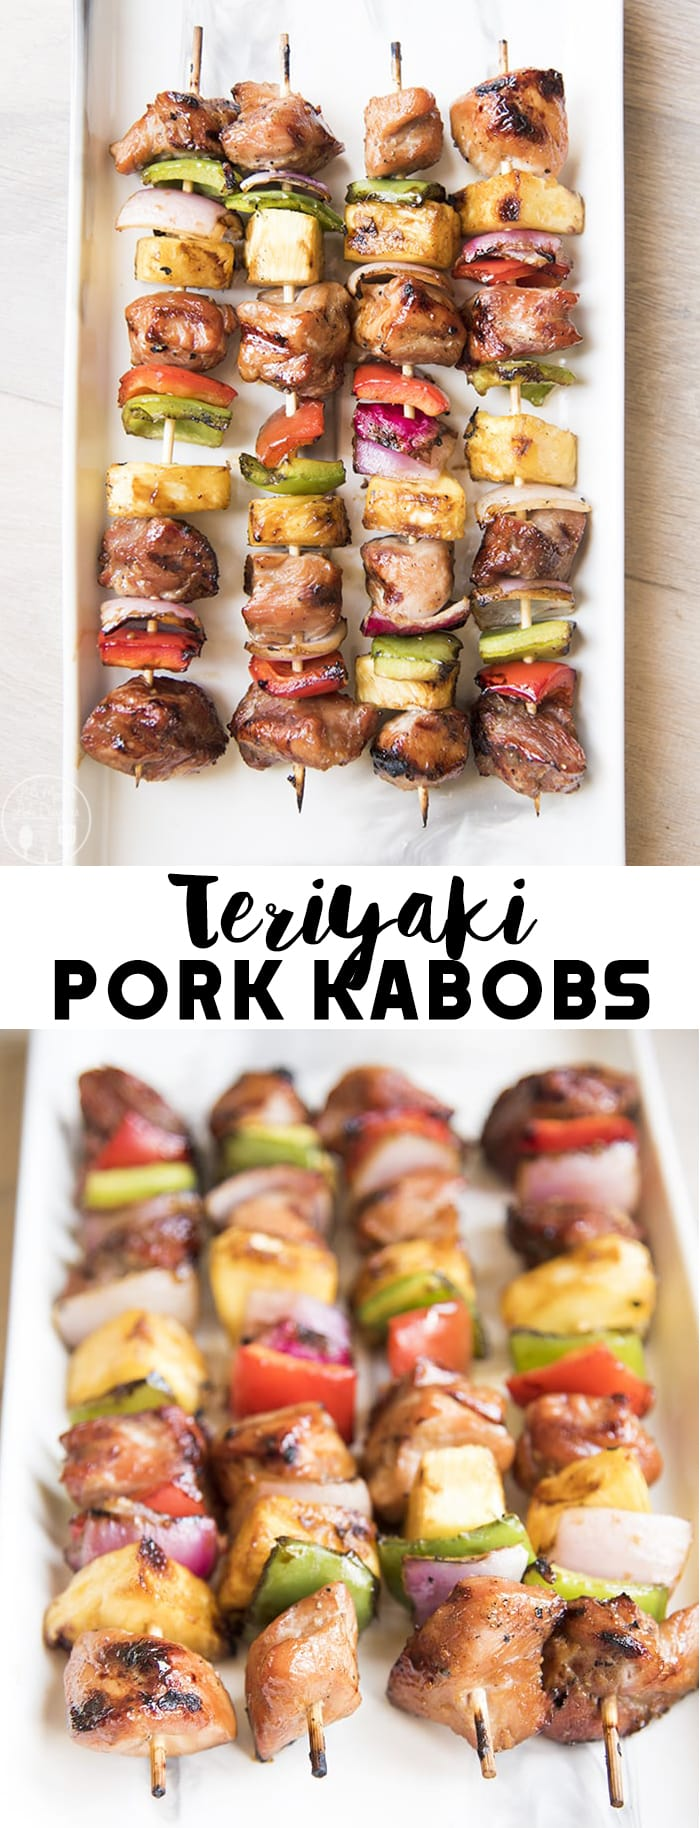 These teriyaki pork kabobs are quick and easy, and so delicious. Perfect for a backyard barbecue, the kabobs are bursting with flavor and packed with juicy pork!